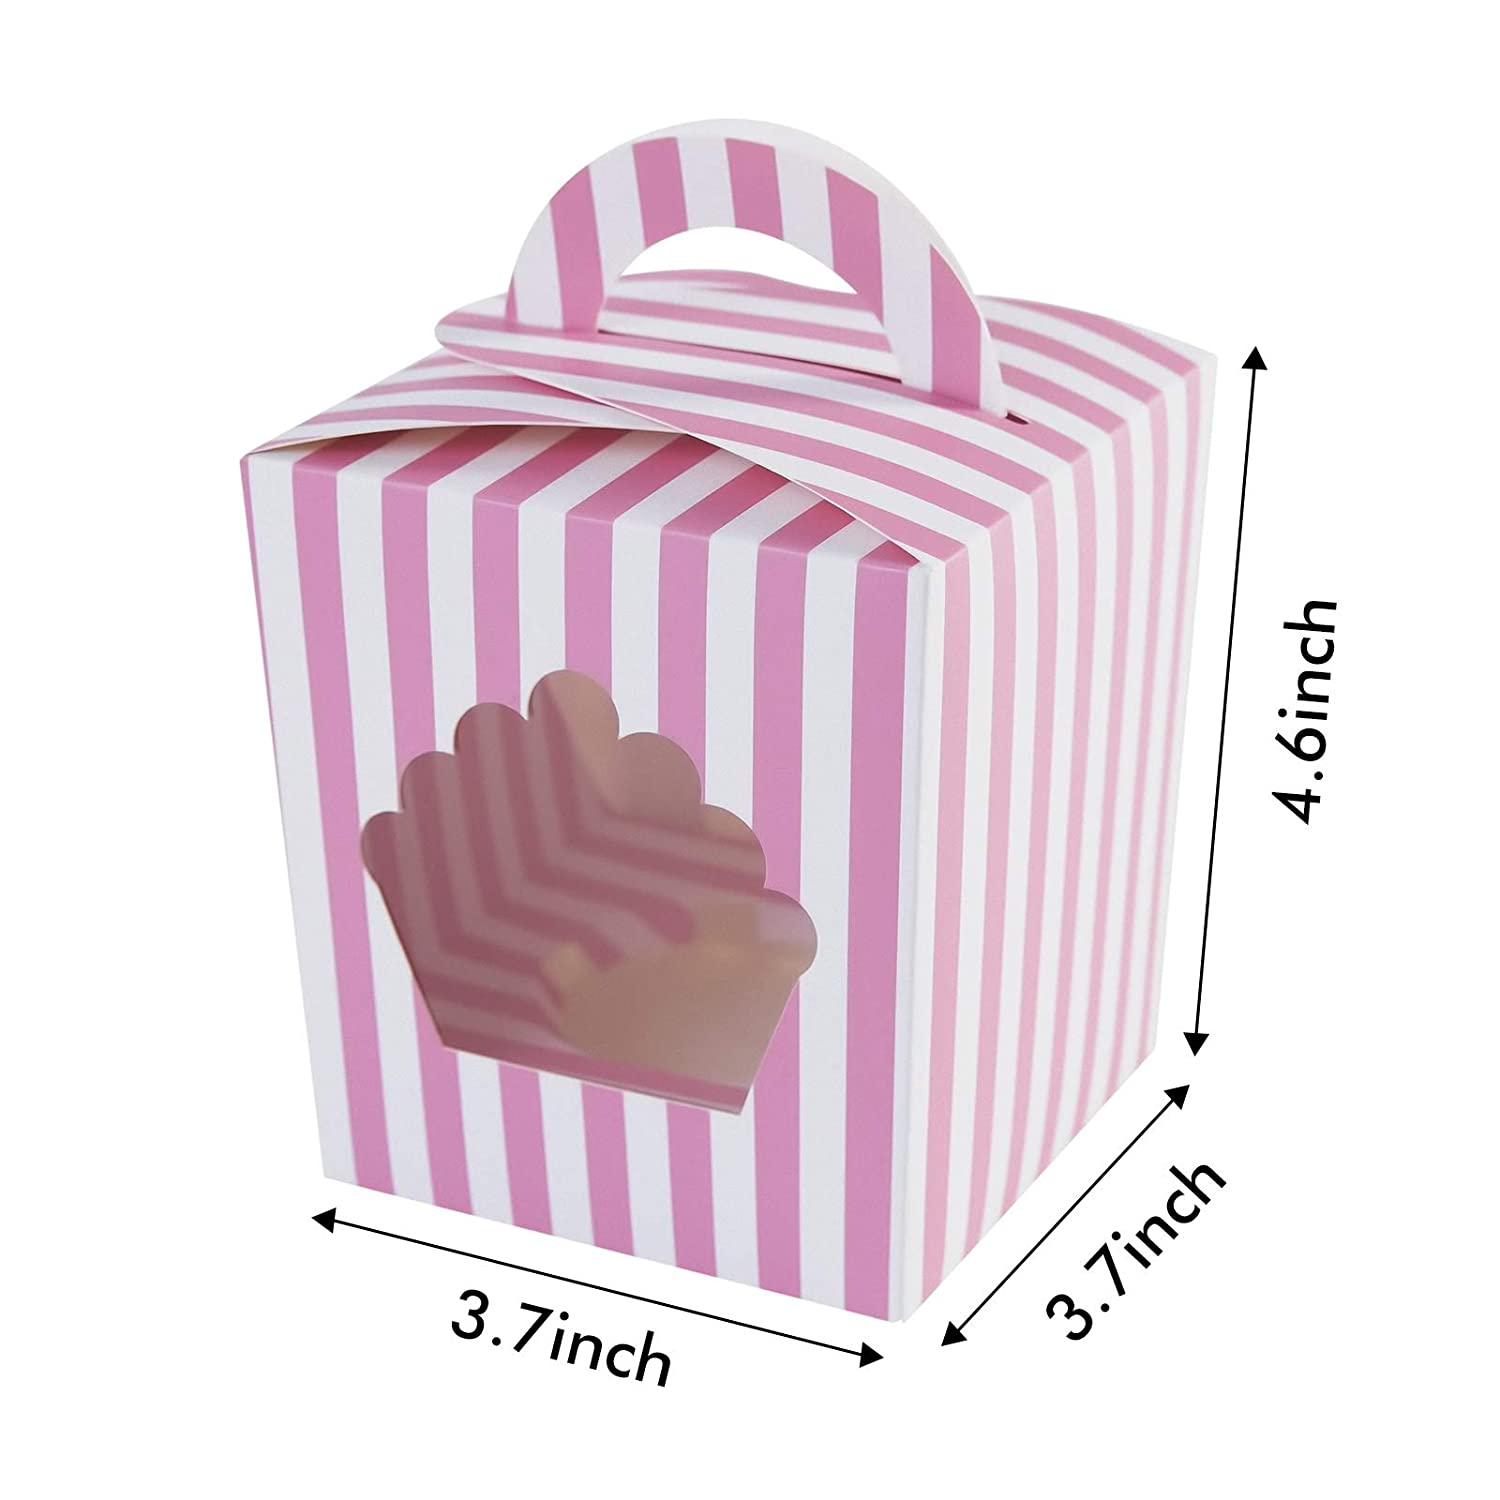 Large Single Cupcake Boxes Containers,Pink Individual Cardboard Cupcake Box Carrier with Insert /& Handles and PVC Window For Birthday and Party Favors Pink, 15